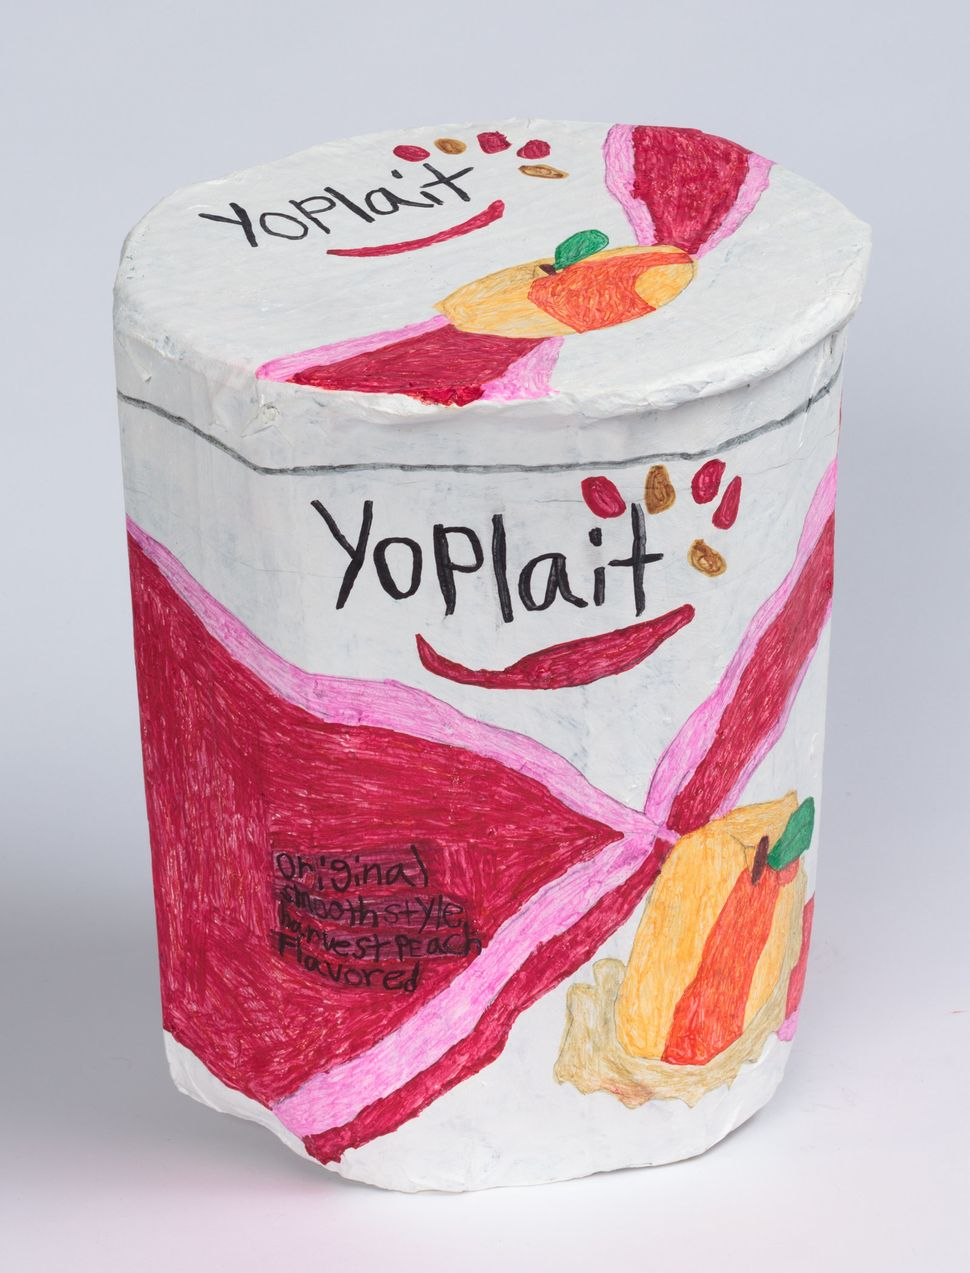 """Yoplait"" by Jesus Huezo, circa 2016, Creativity Explored Licensing, mixed media sculpture, 12 x 9.5 x 9.25 inches."